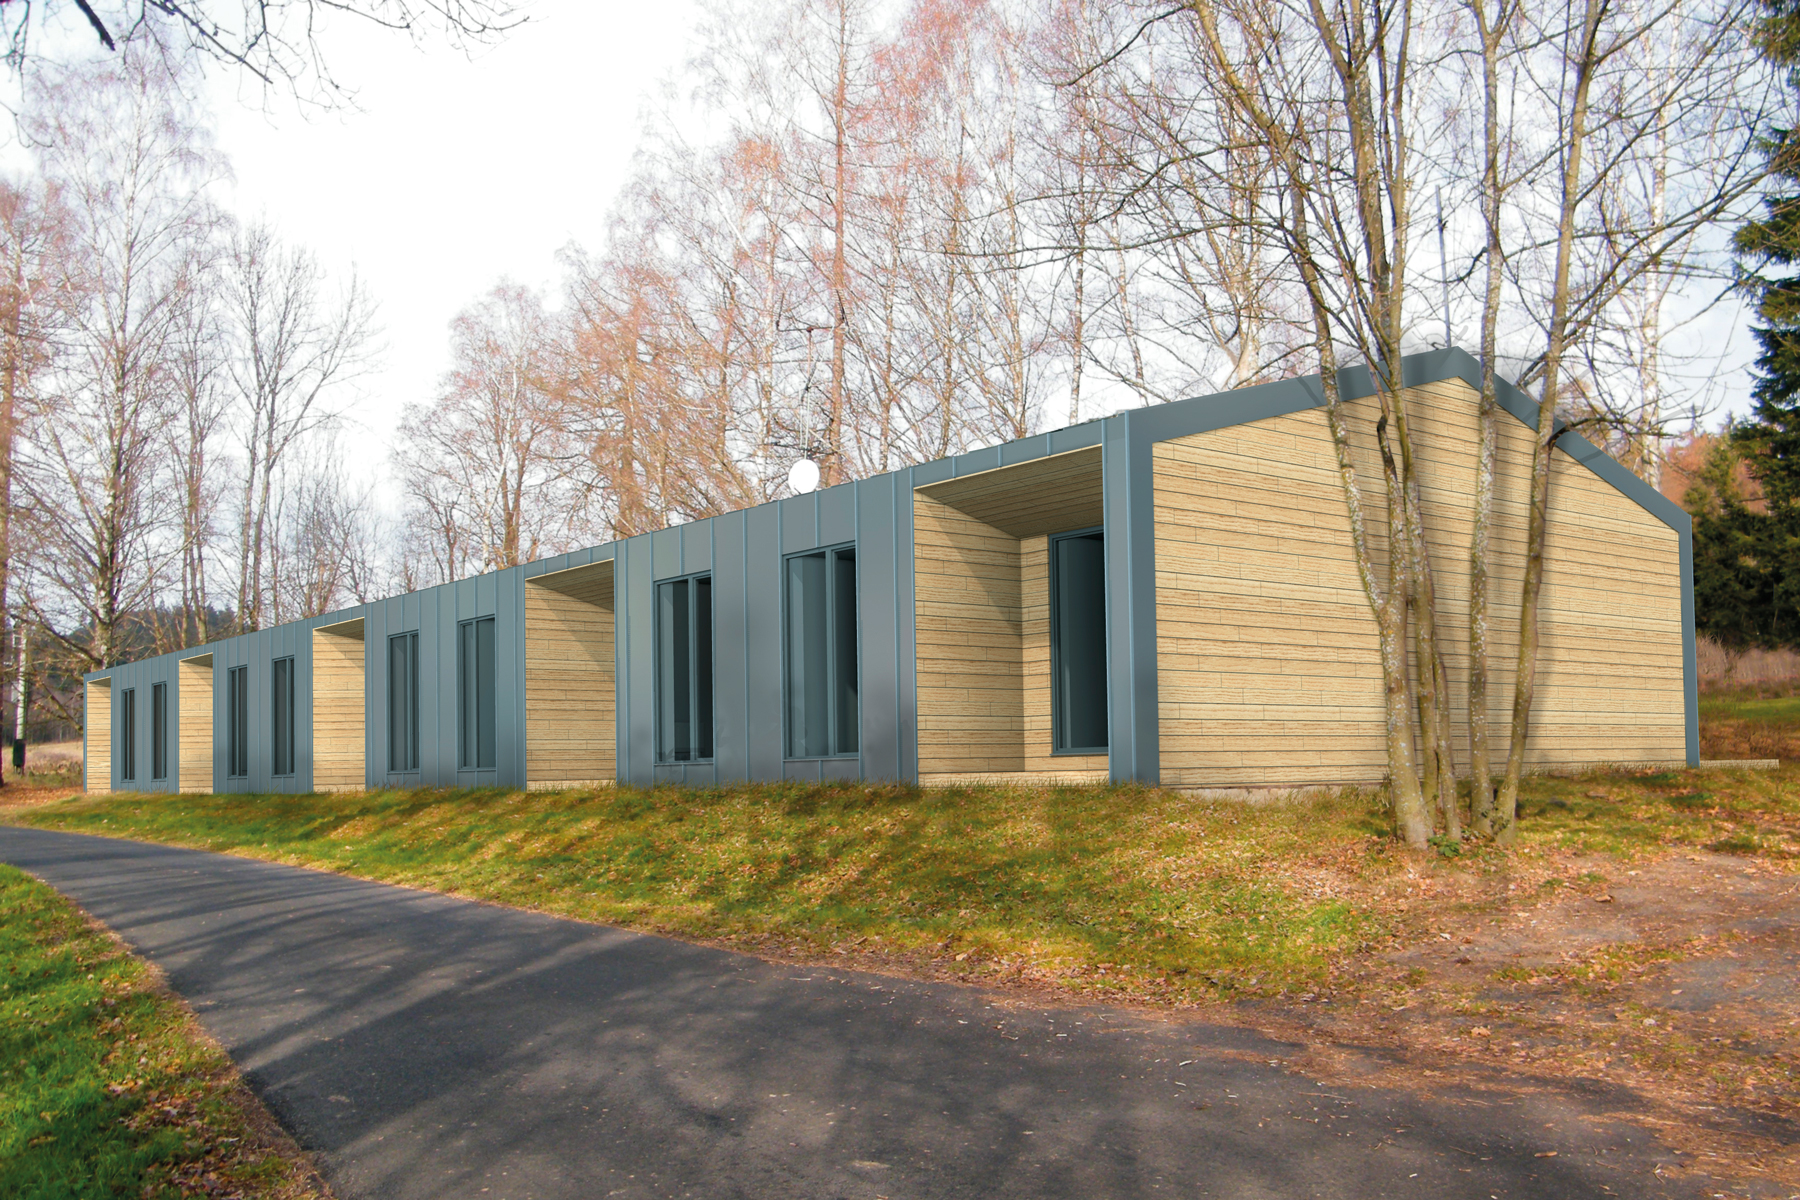 RECREATIONAL RESIDENCE AT LIPNO LAKE DISTRICT